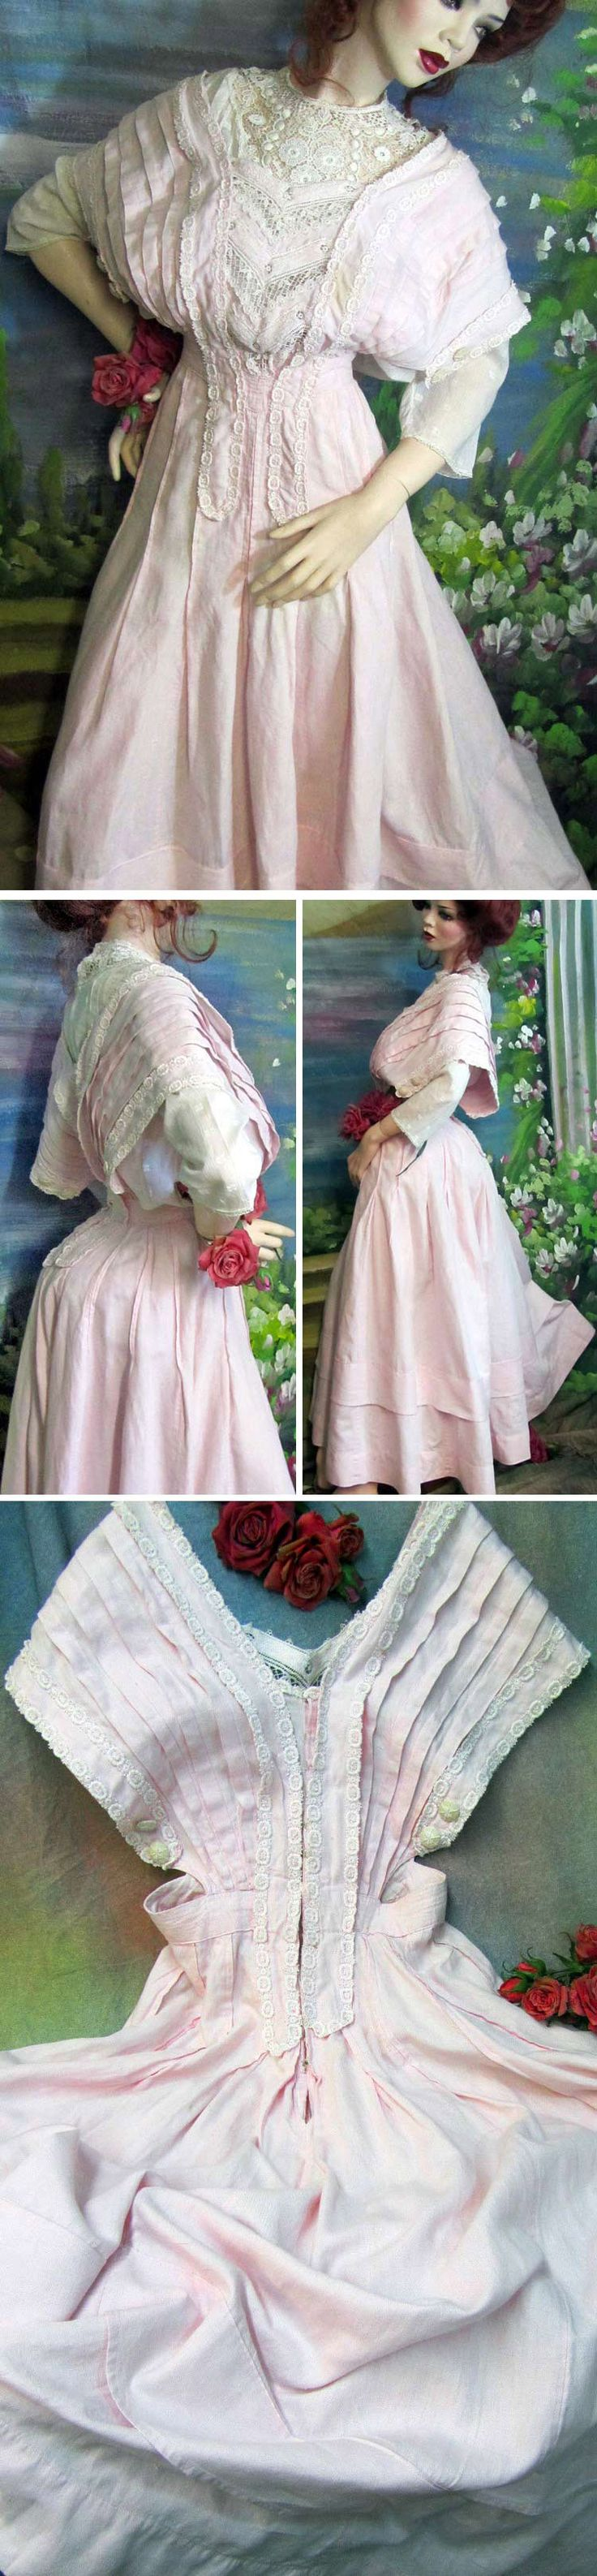 Day dress ca. 1900s or 1910s. Light pink linen trimmed with cotton lace & crocheted lace. Blouse underneath is not original. Seller thinks it's a Victorian bustle dress and that women capered around like flappers at that time (to judge from the way she posed her mannequin). Reflectionsdru/ebay